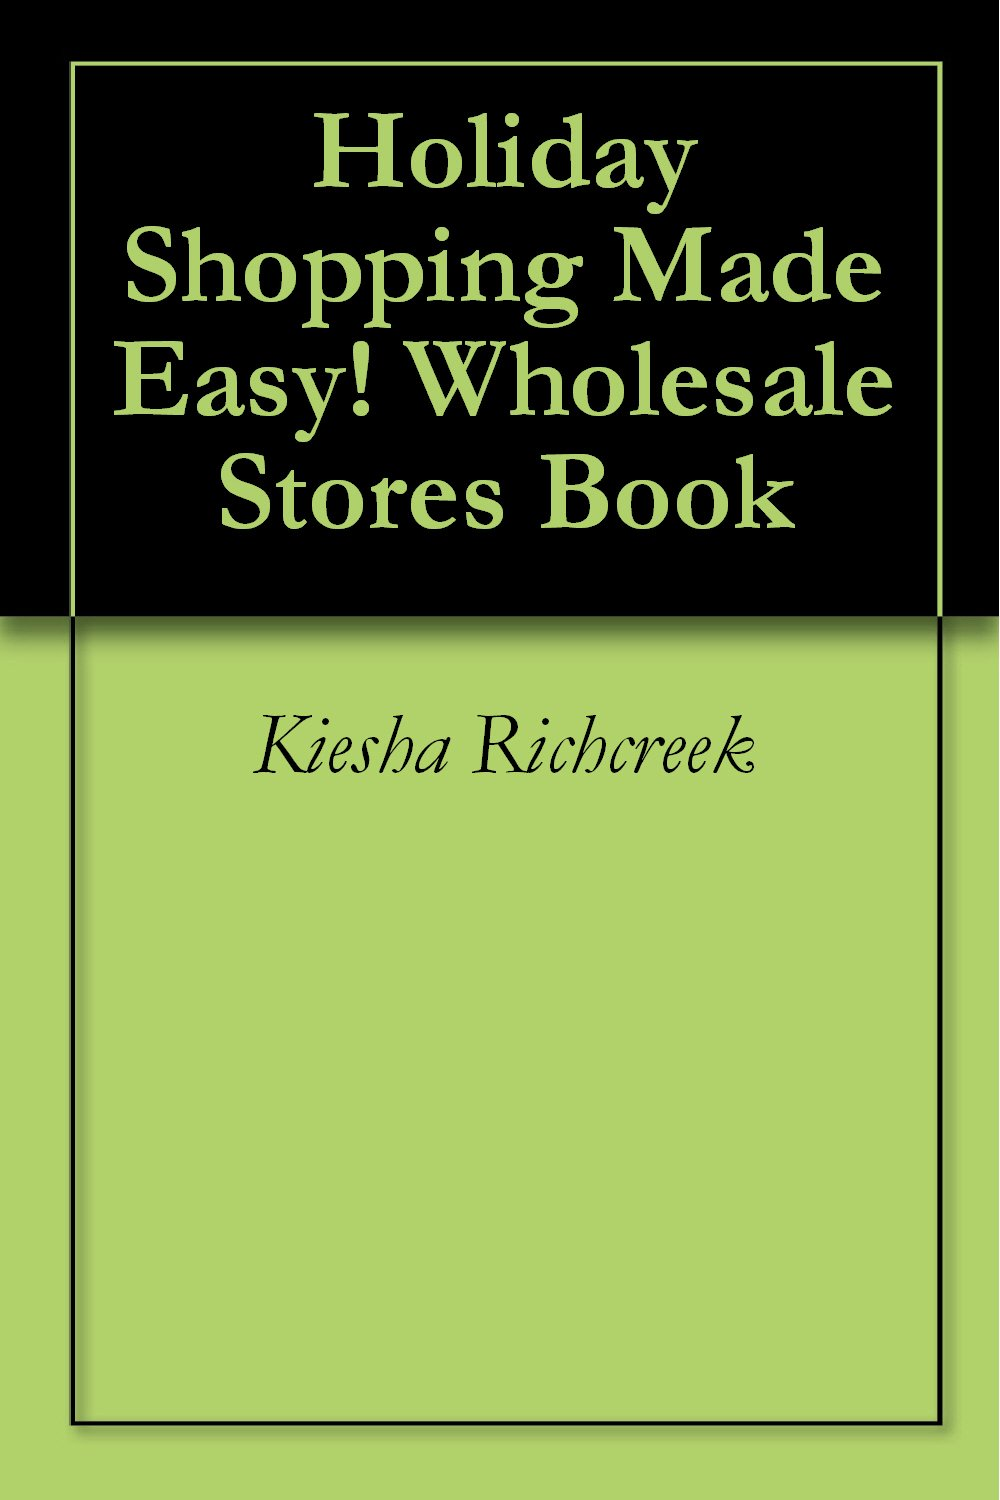 Holiday Shopping Made Easy! Wholesale Stores Book